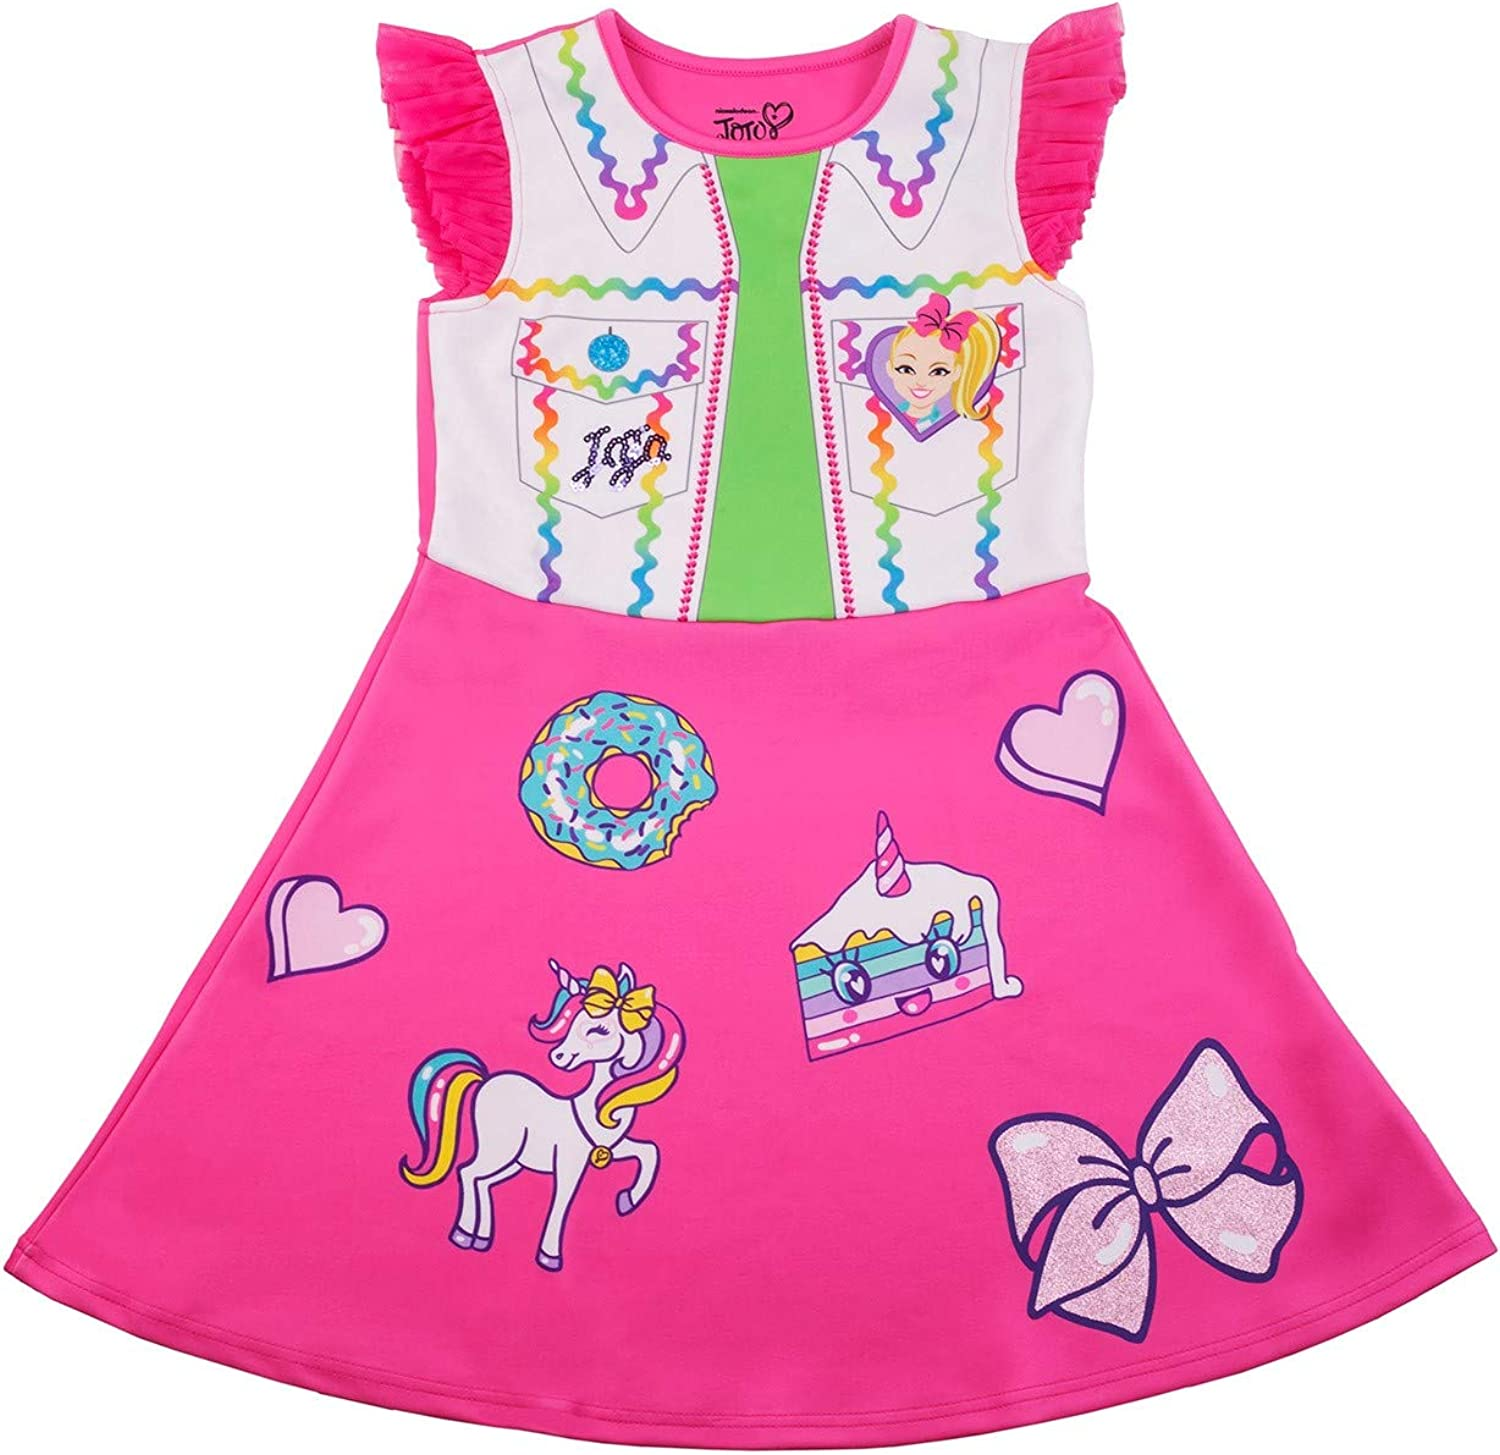 Nickelodeon Girls JoJo Siwa & Bow Bow Multicolored Knit Dress with Removable Purse